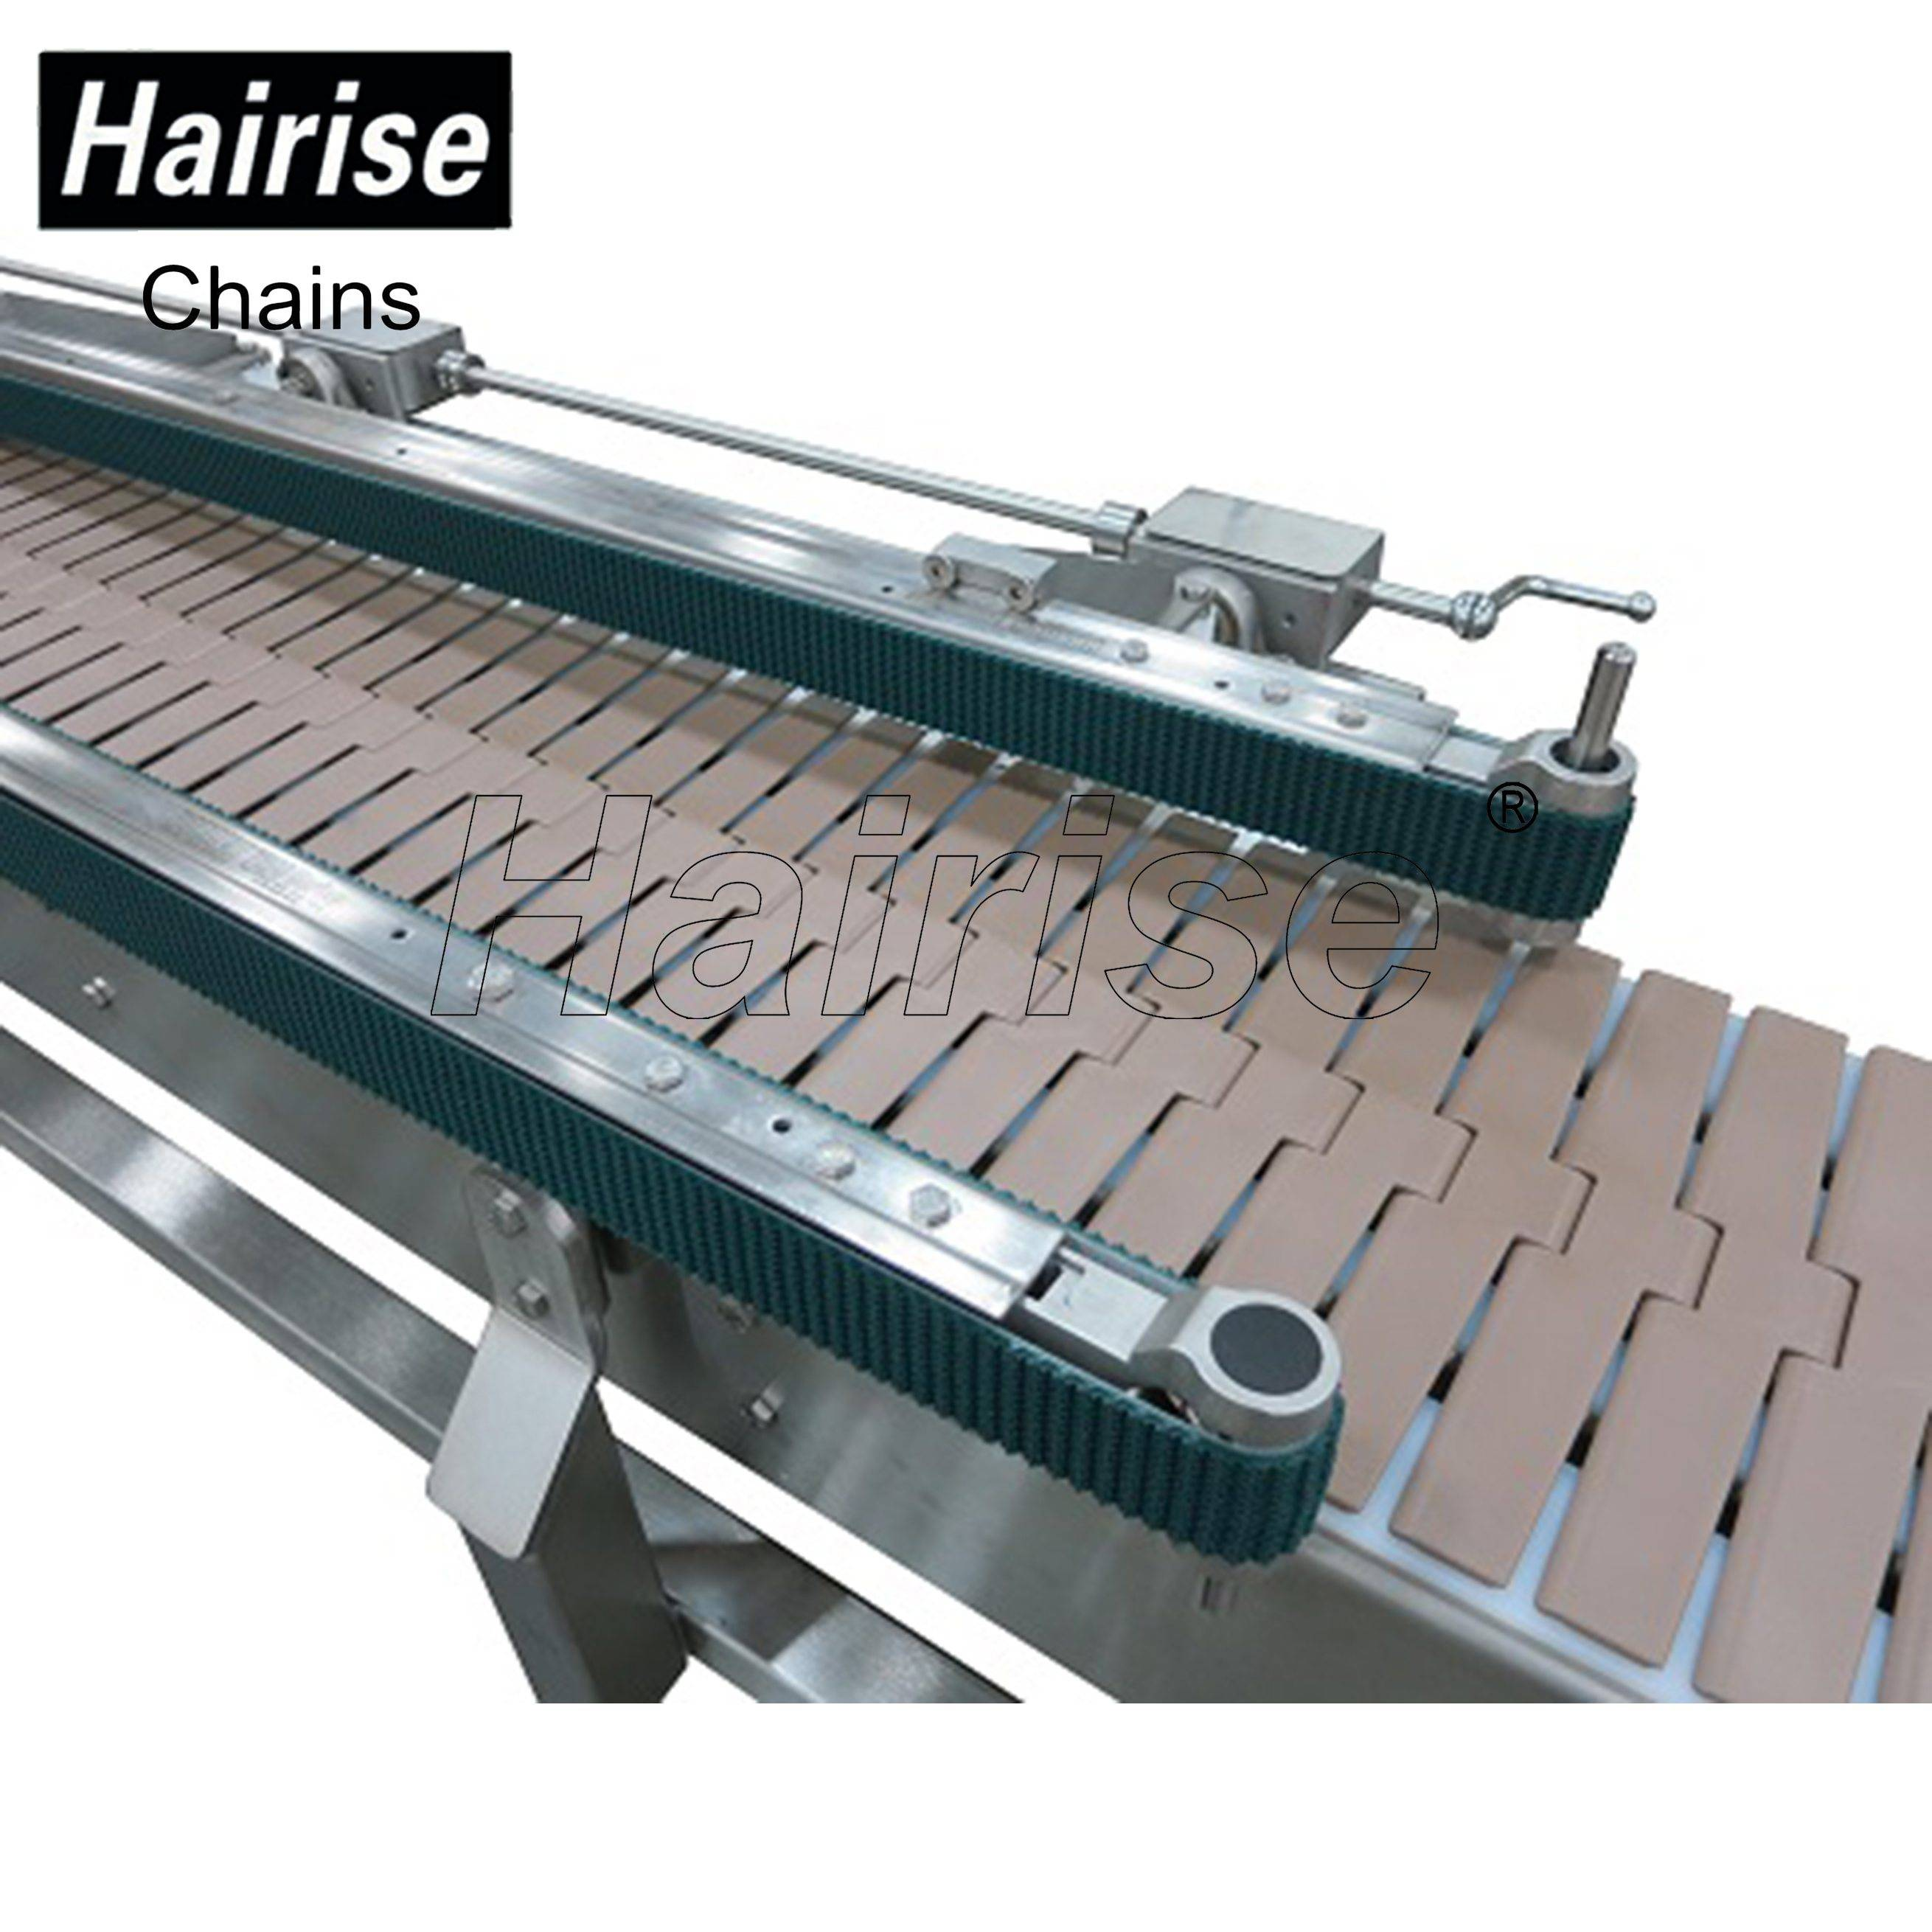 Hairise Straight Conveyor with Plastic Top Chains